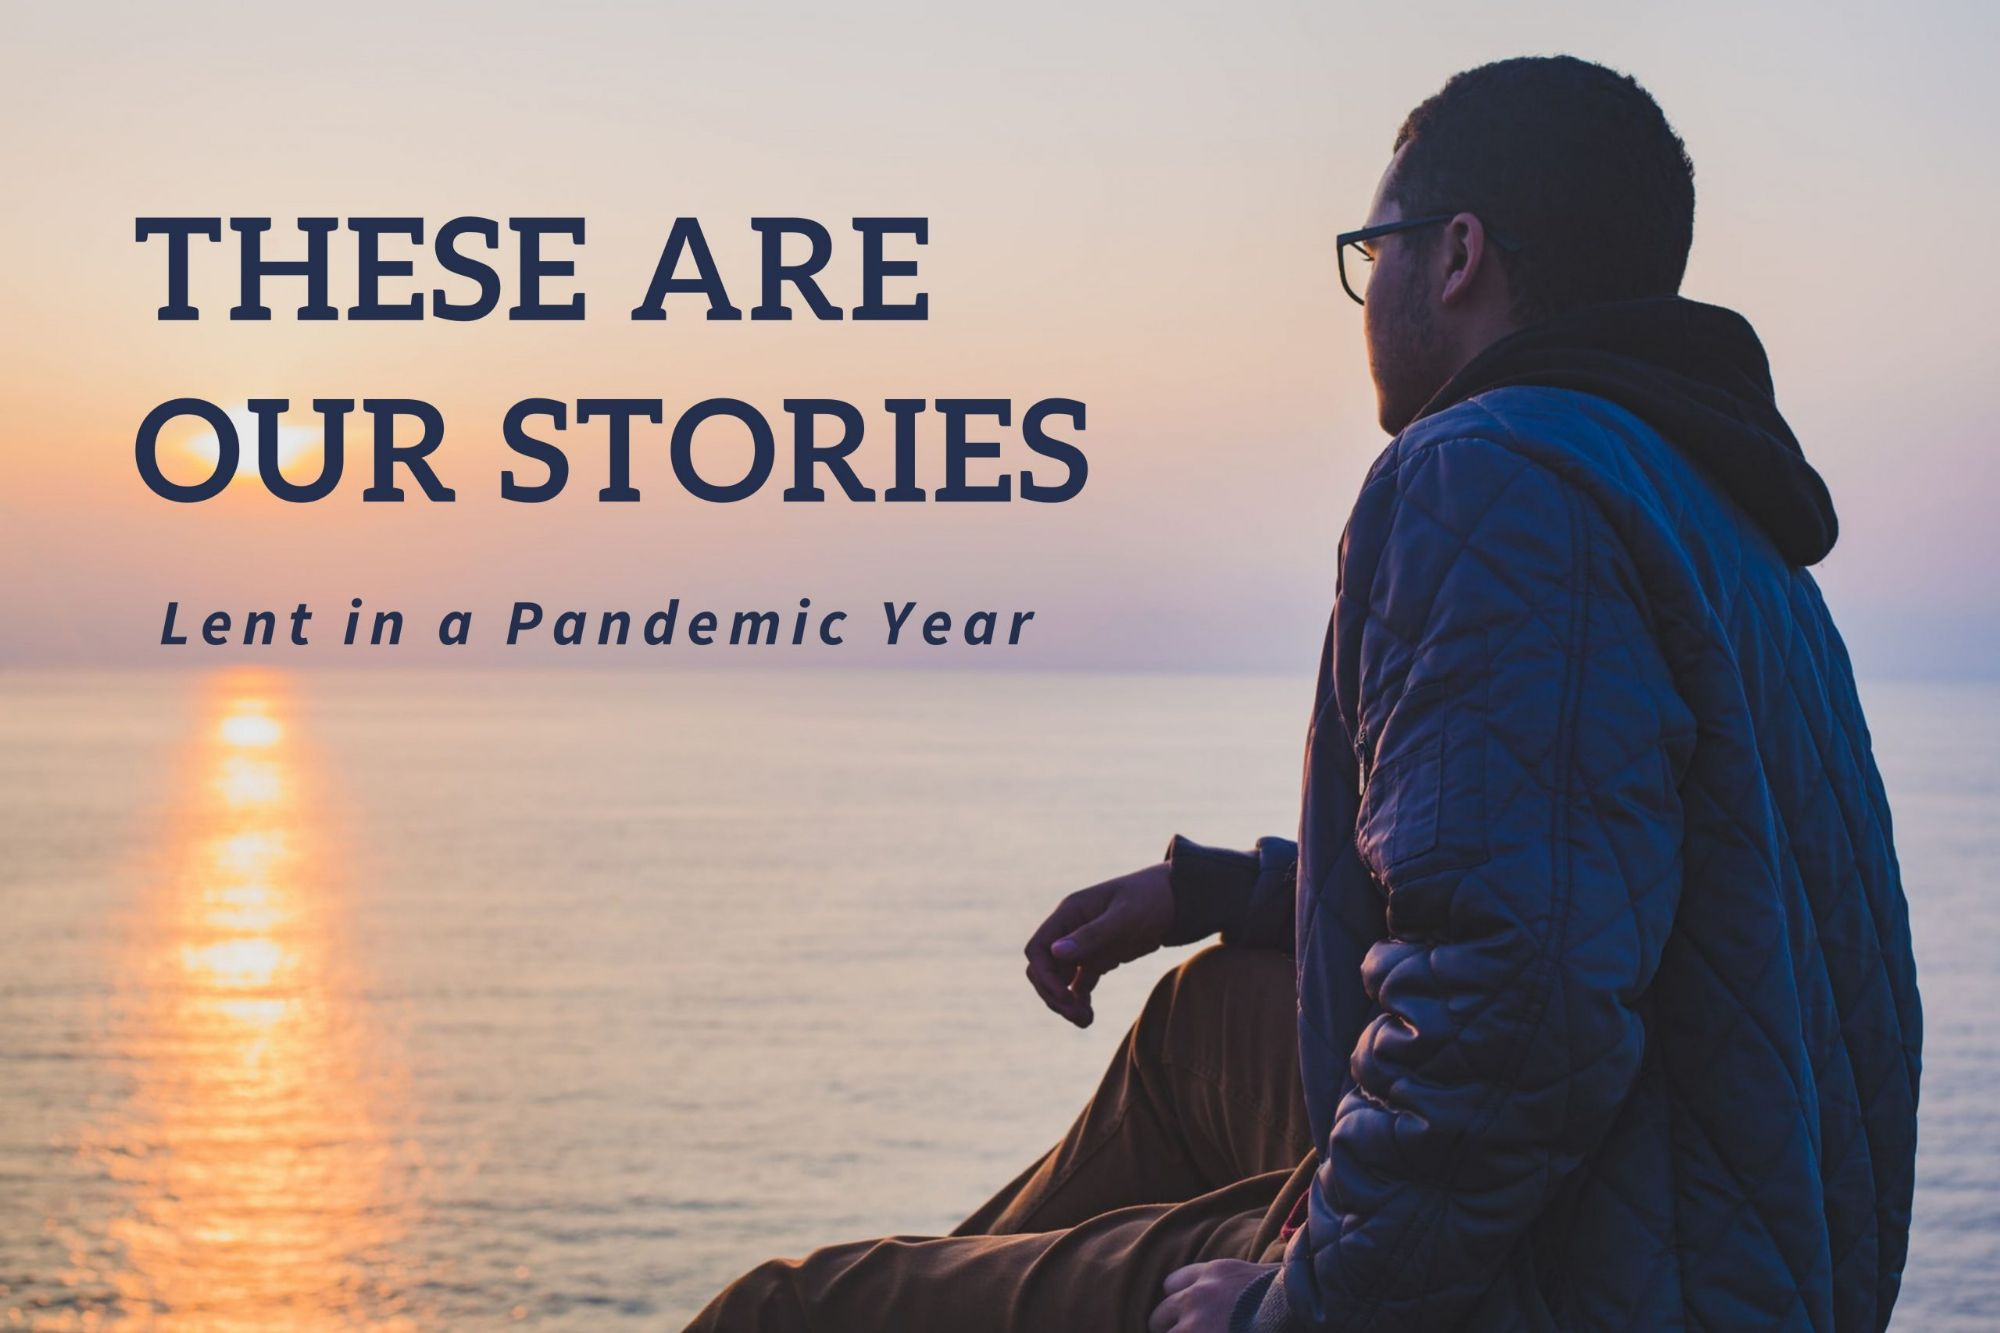 These are our stories